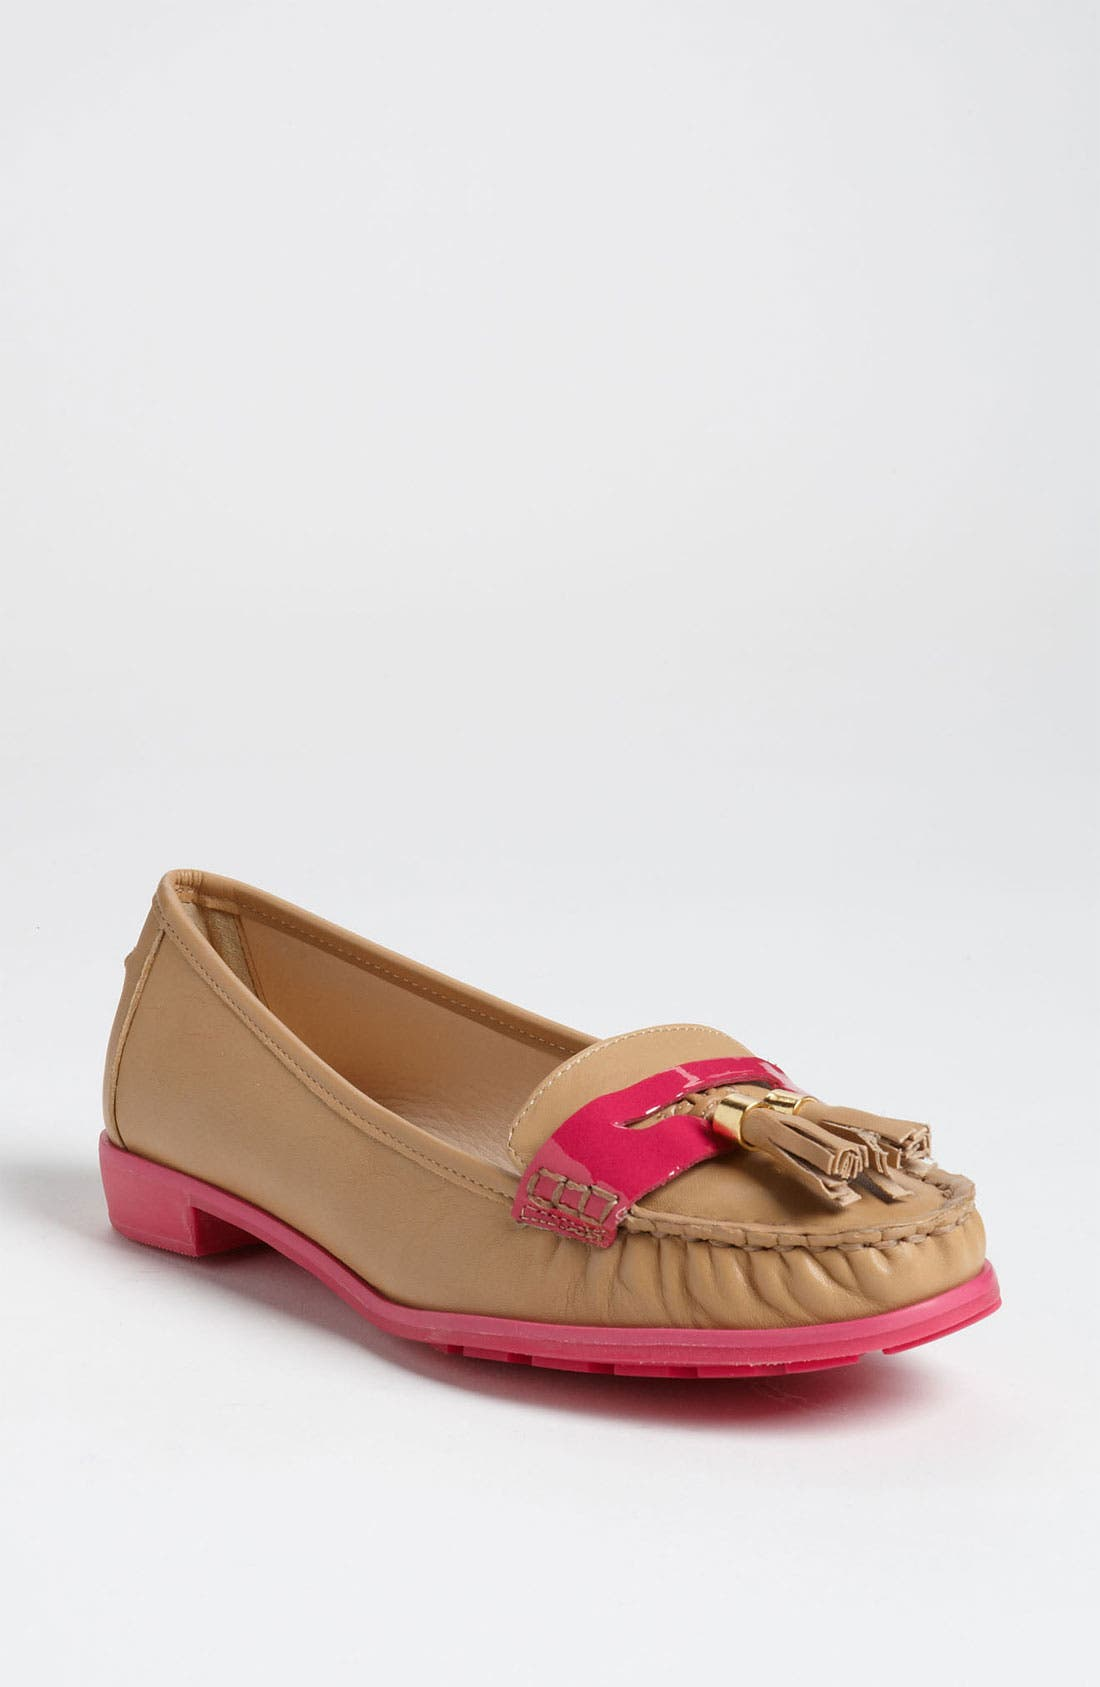 Main Image - kate spade new york 'cabara' loafer